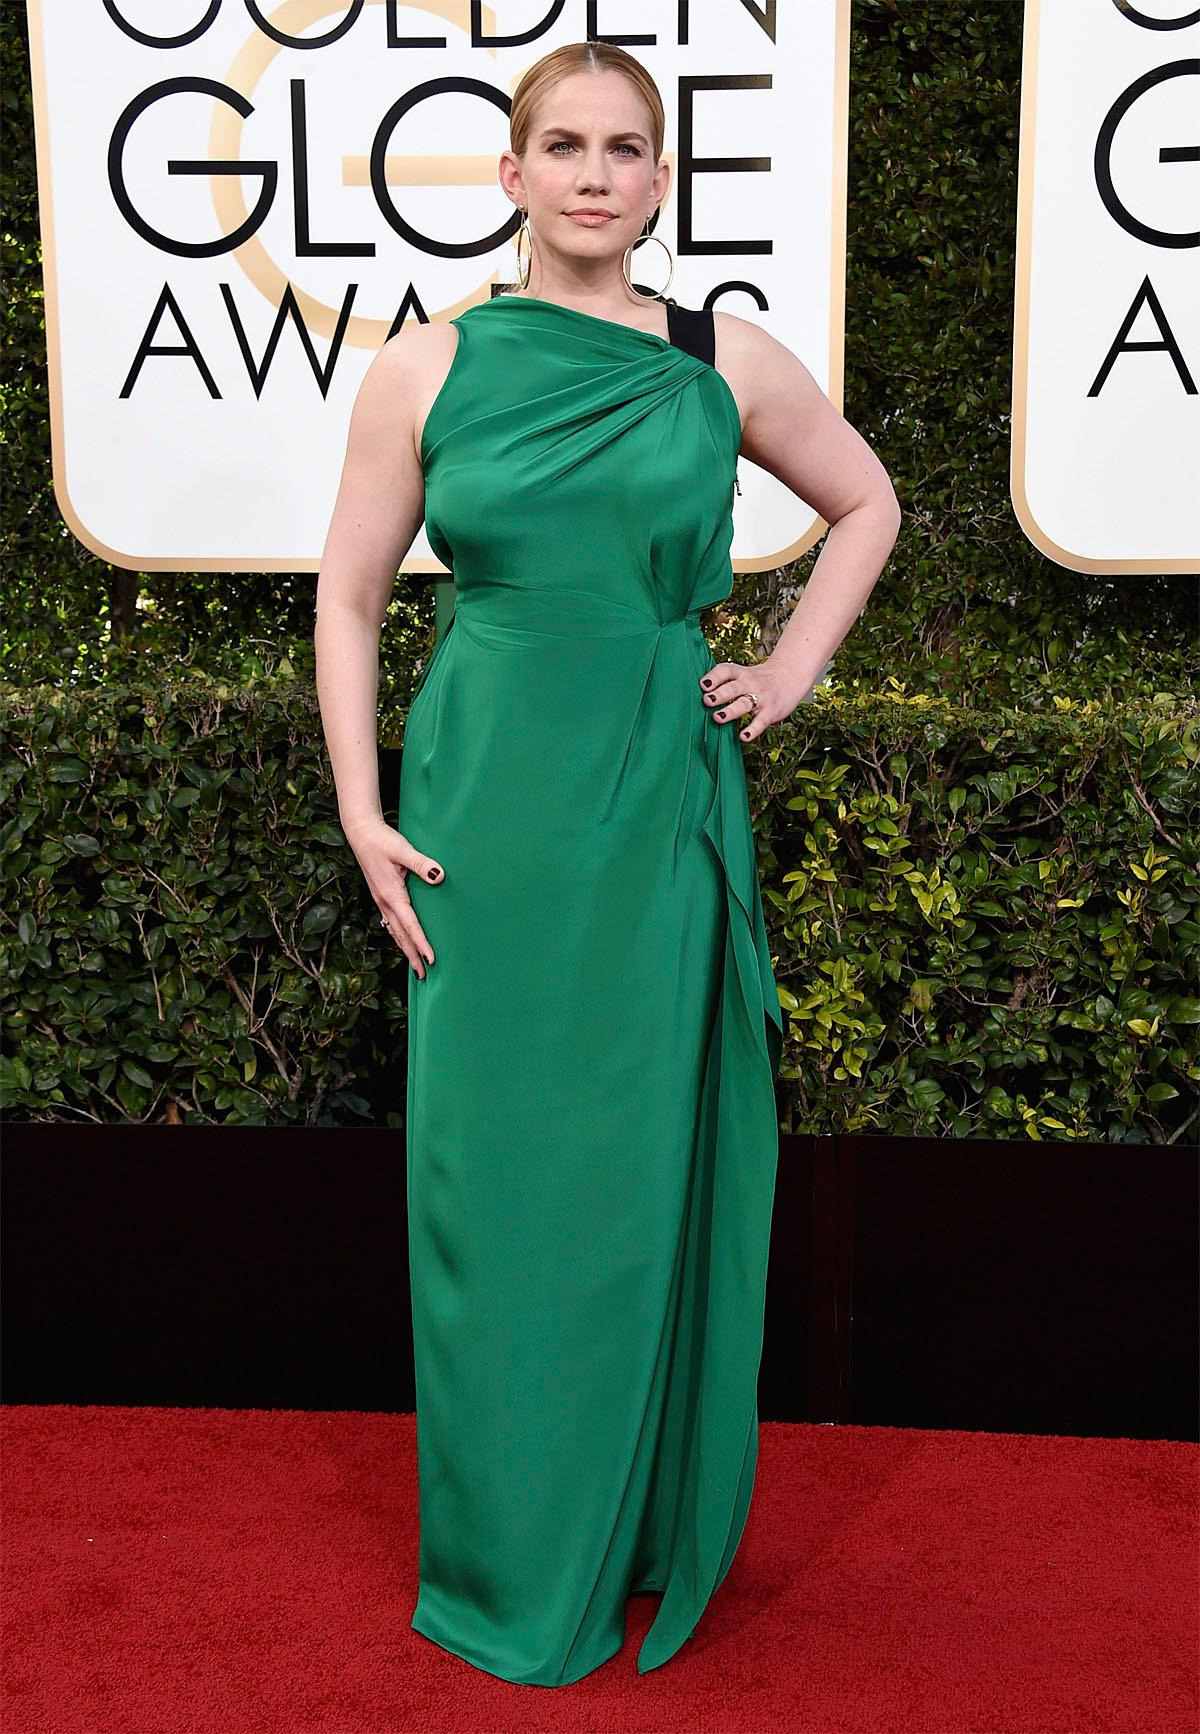 Anna Chlumsky arrives at the 74th annual Golden Globe Awards at the Beverly Hilton Hotel on Sunday, Jan. 8, 2017, in Beverly Hills, Calif. (Photo by Jordan Strauss/Invision/AP)